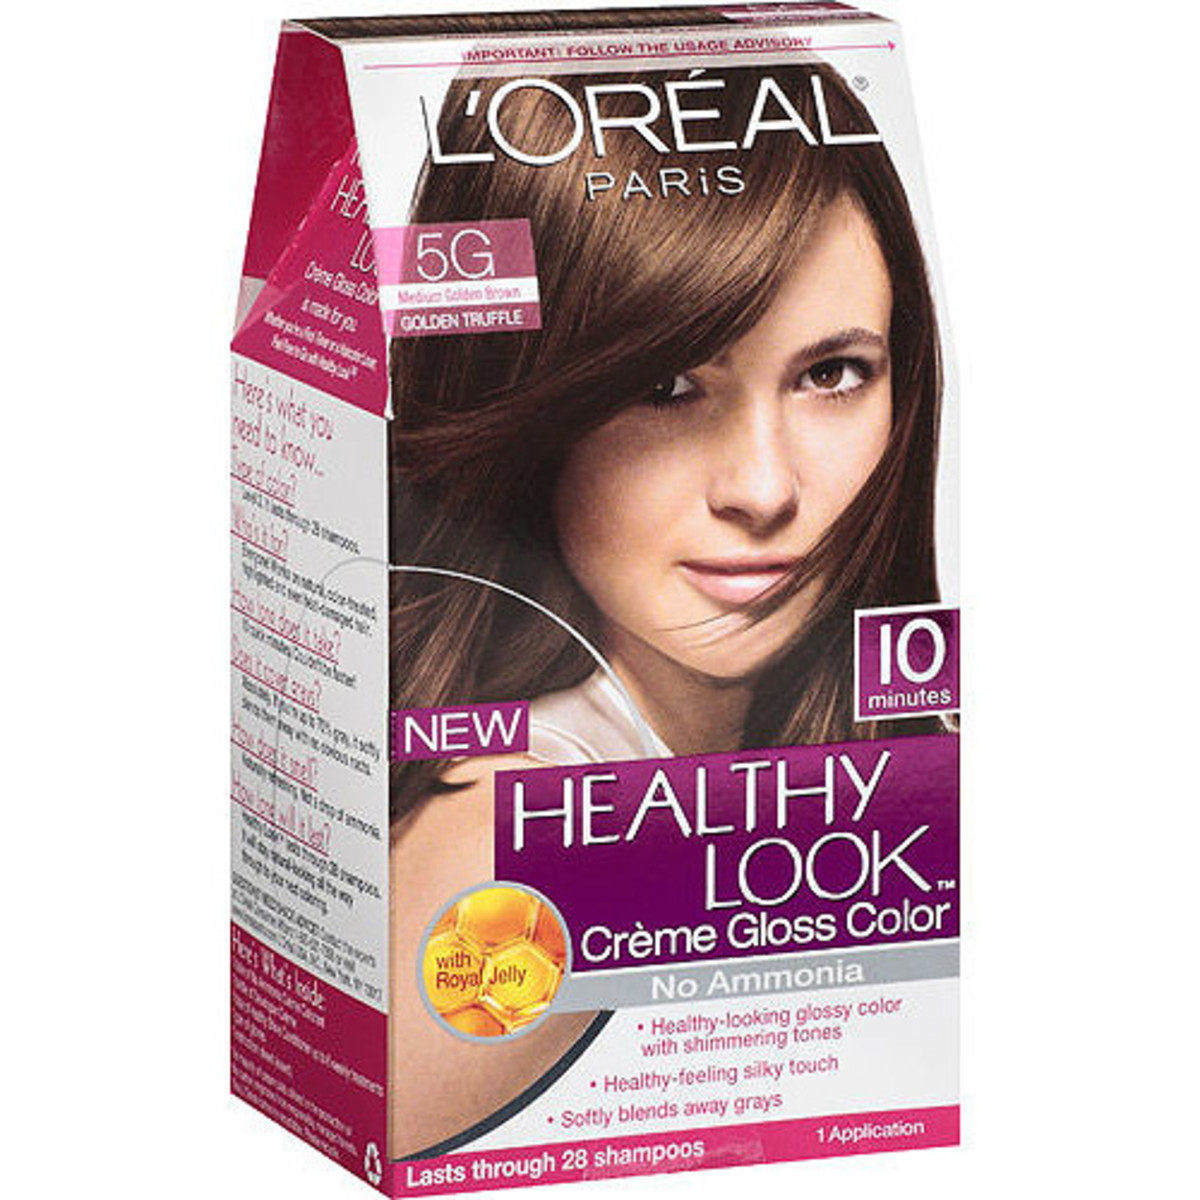 Straight perm thin hair - L Oreal Paris Healthy Look Creme Gloss Color